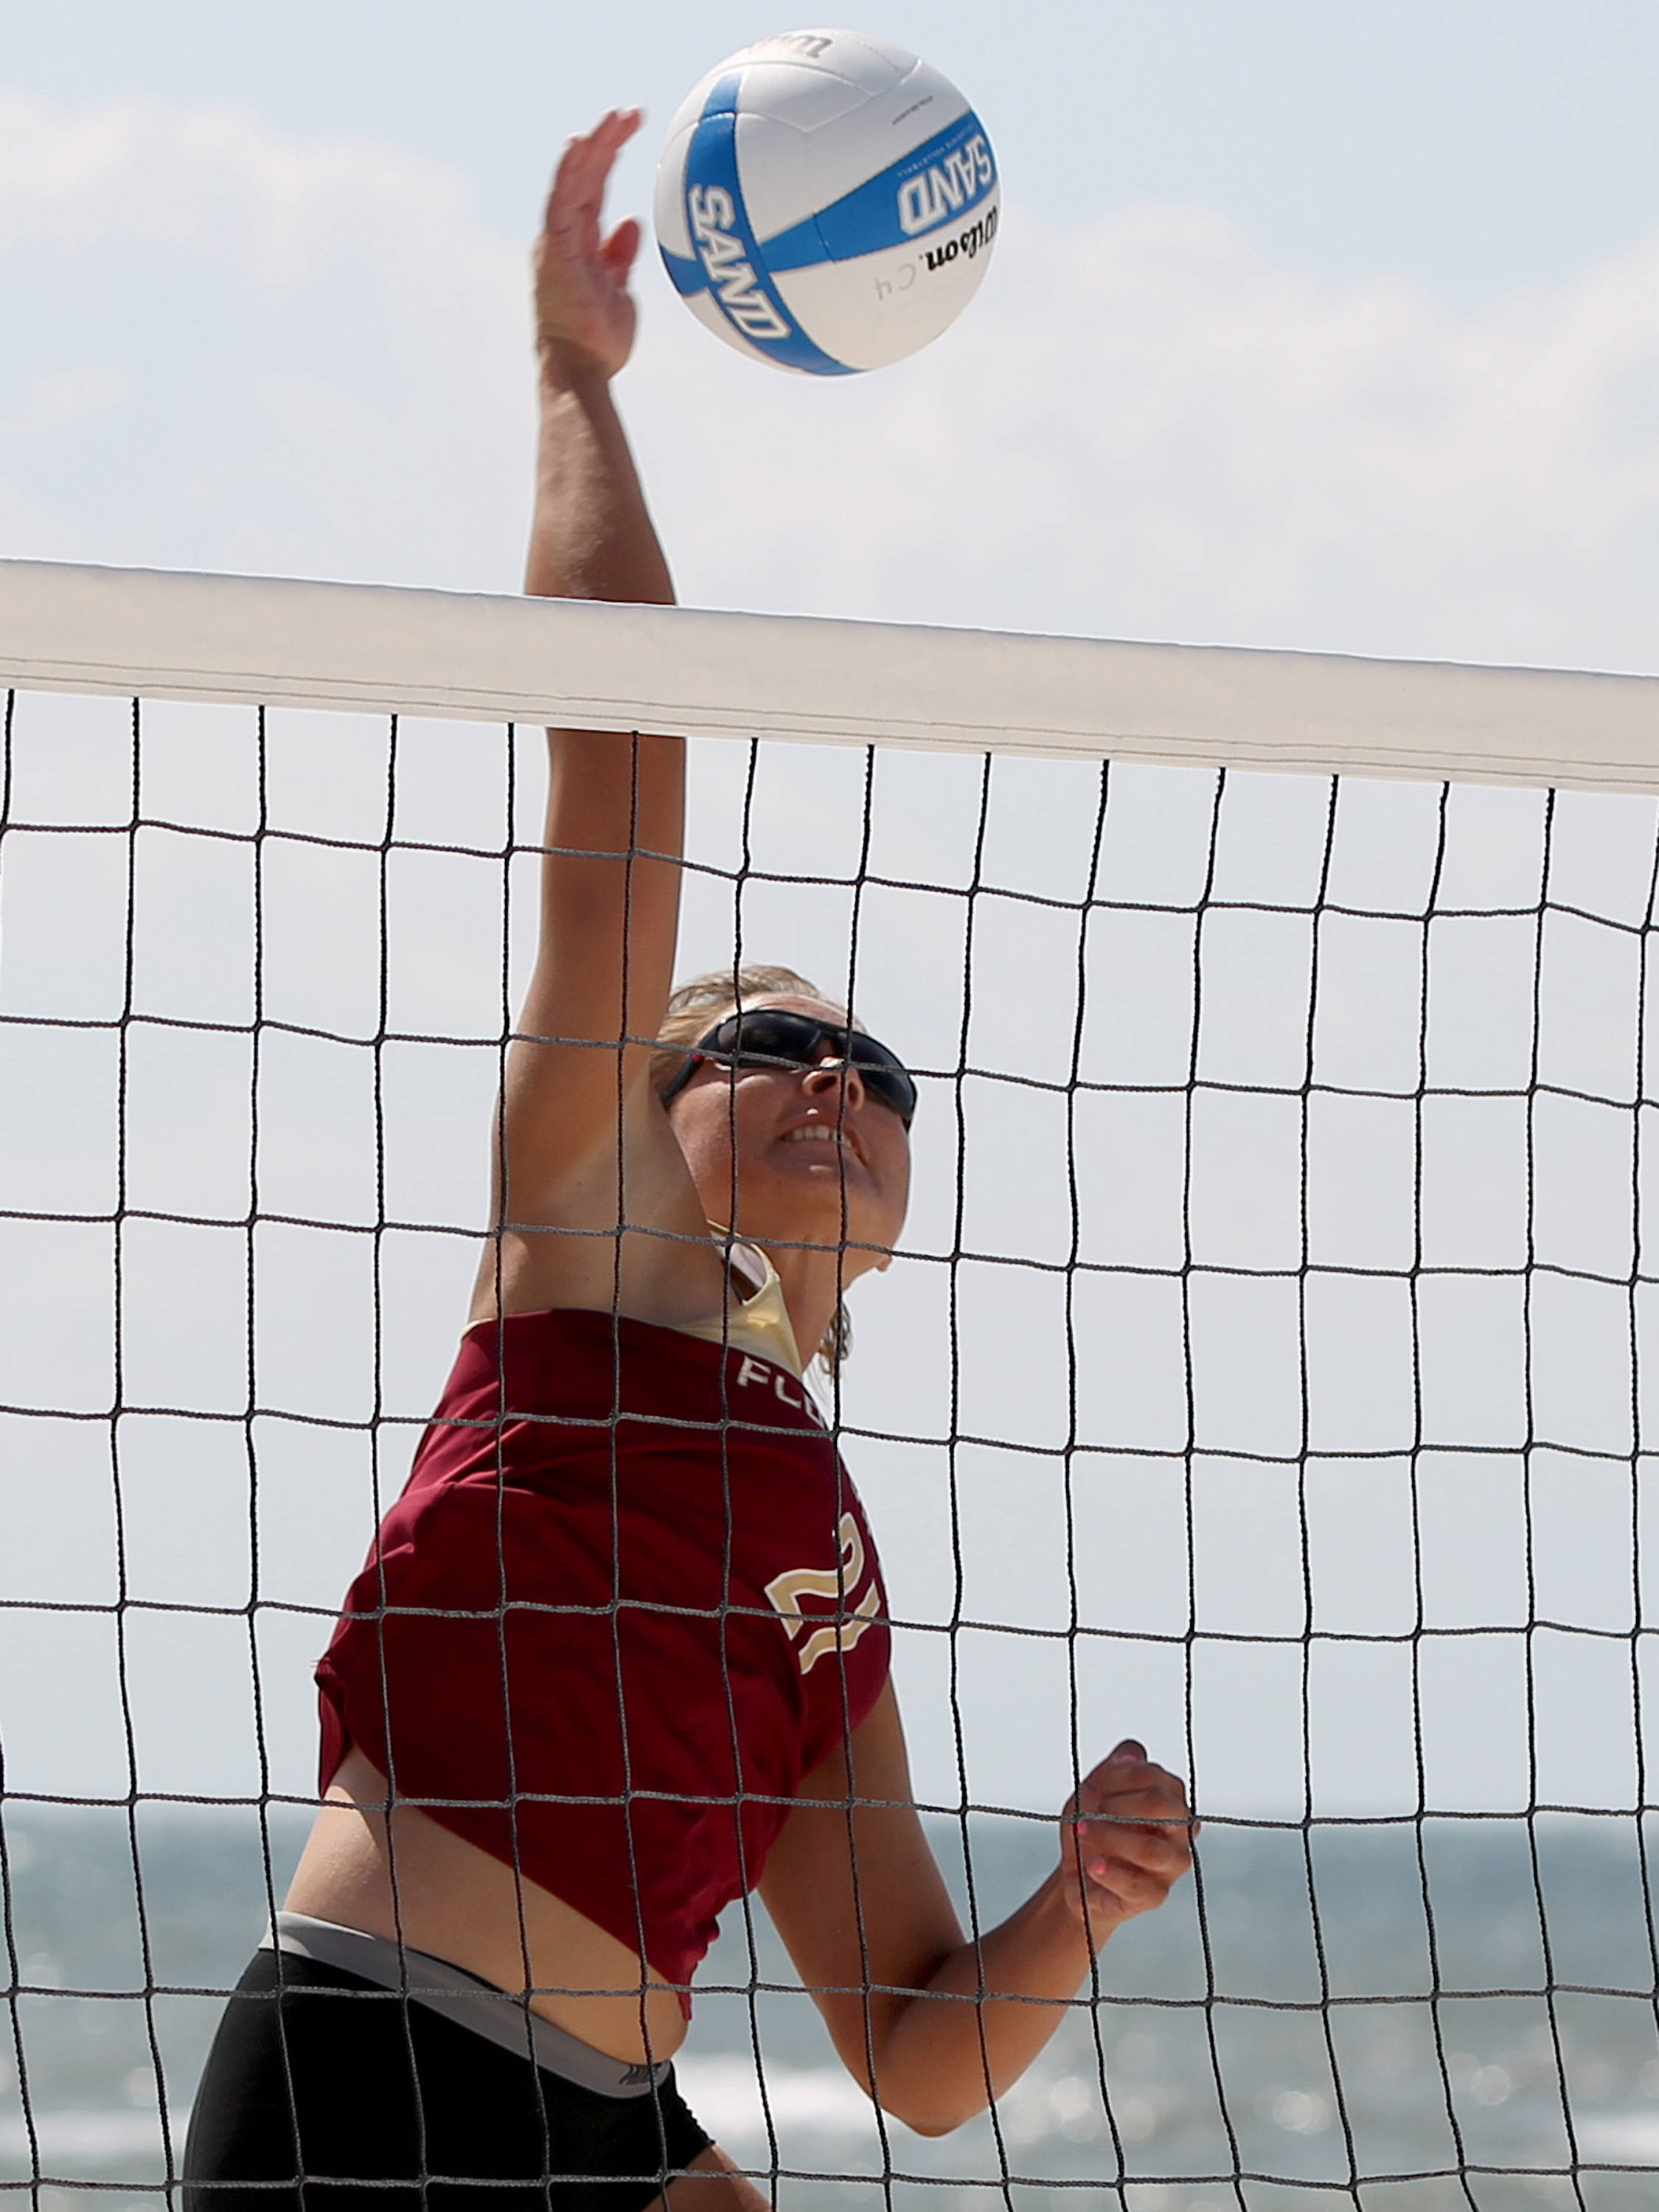 Jace Pardon, AVCA Collegiate Sand Volleyball National  Championships - Pairs,  Gulf Shores, Alabama, 05/05/13 . (Photo by Steve Musco)